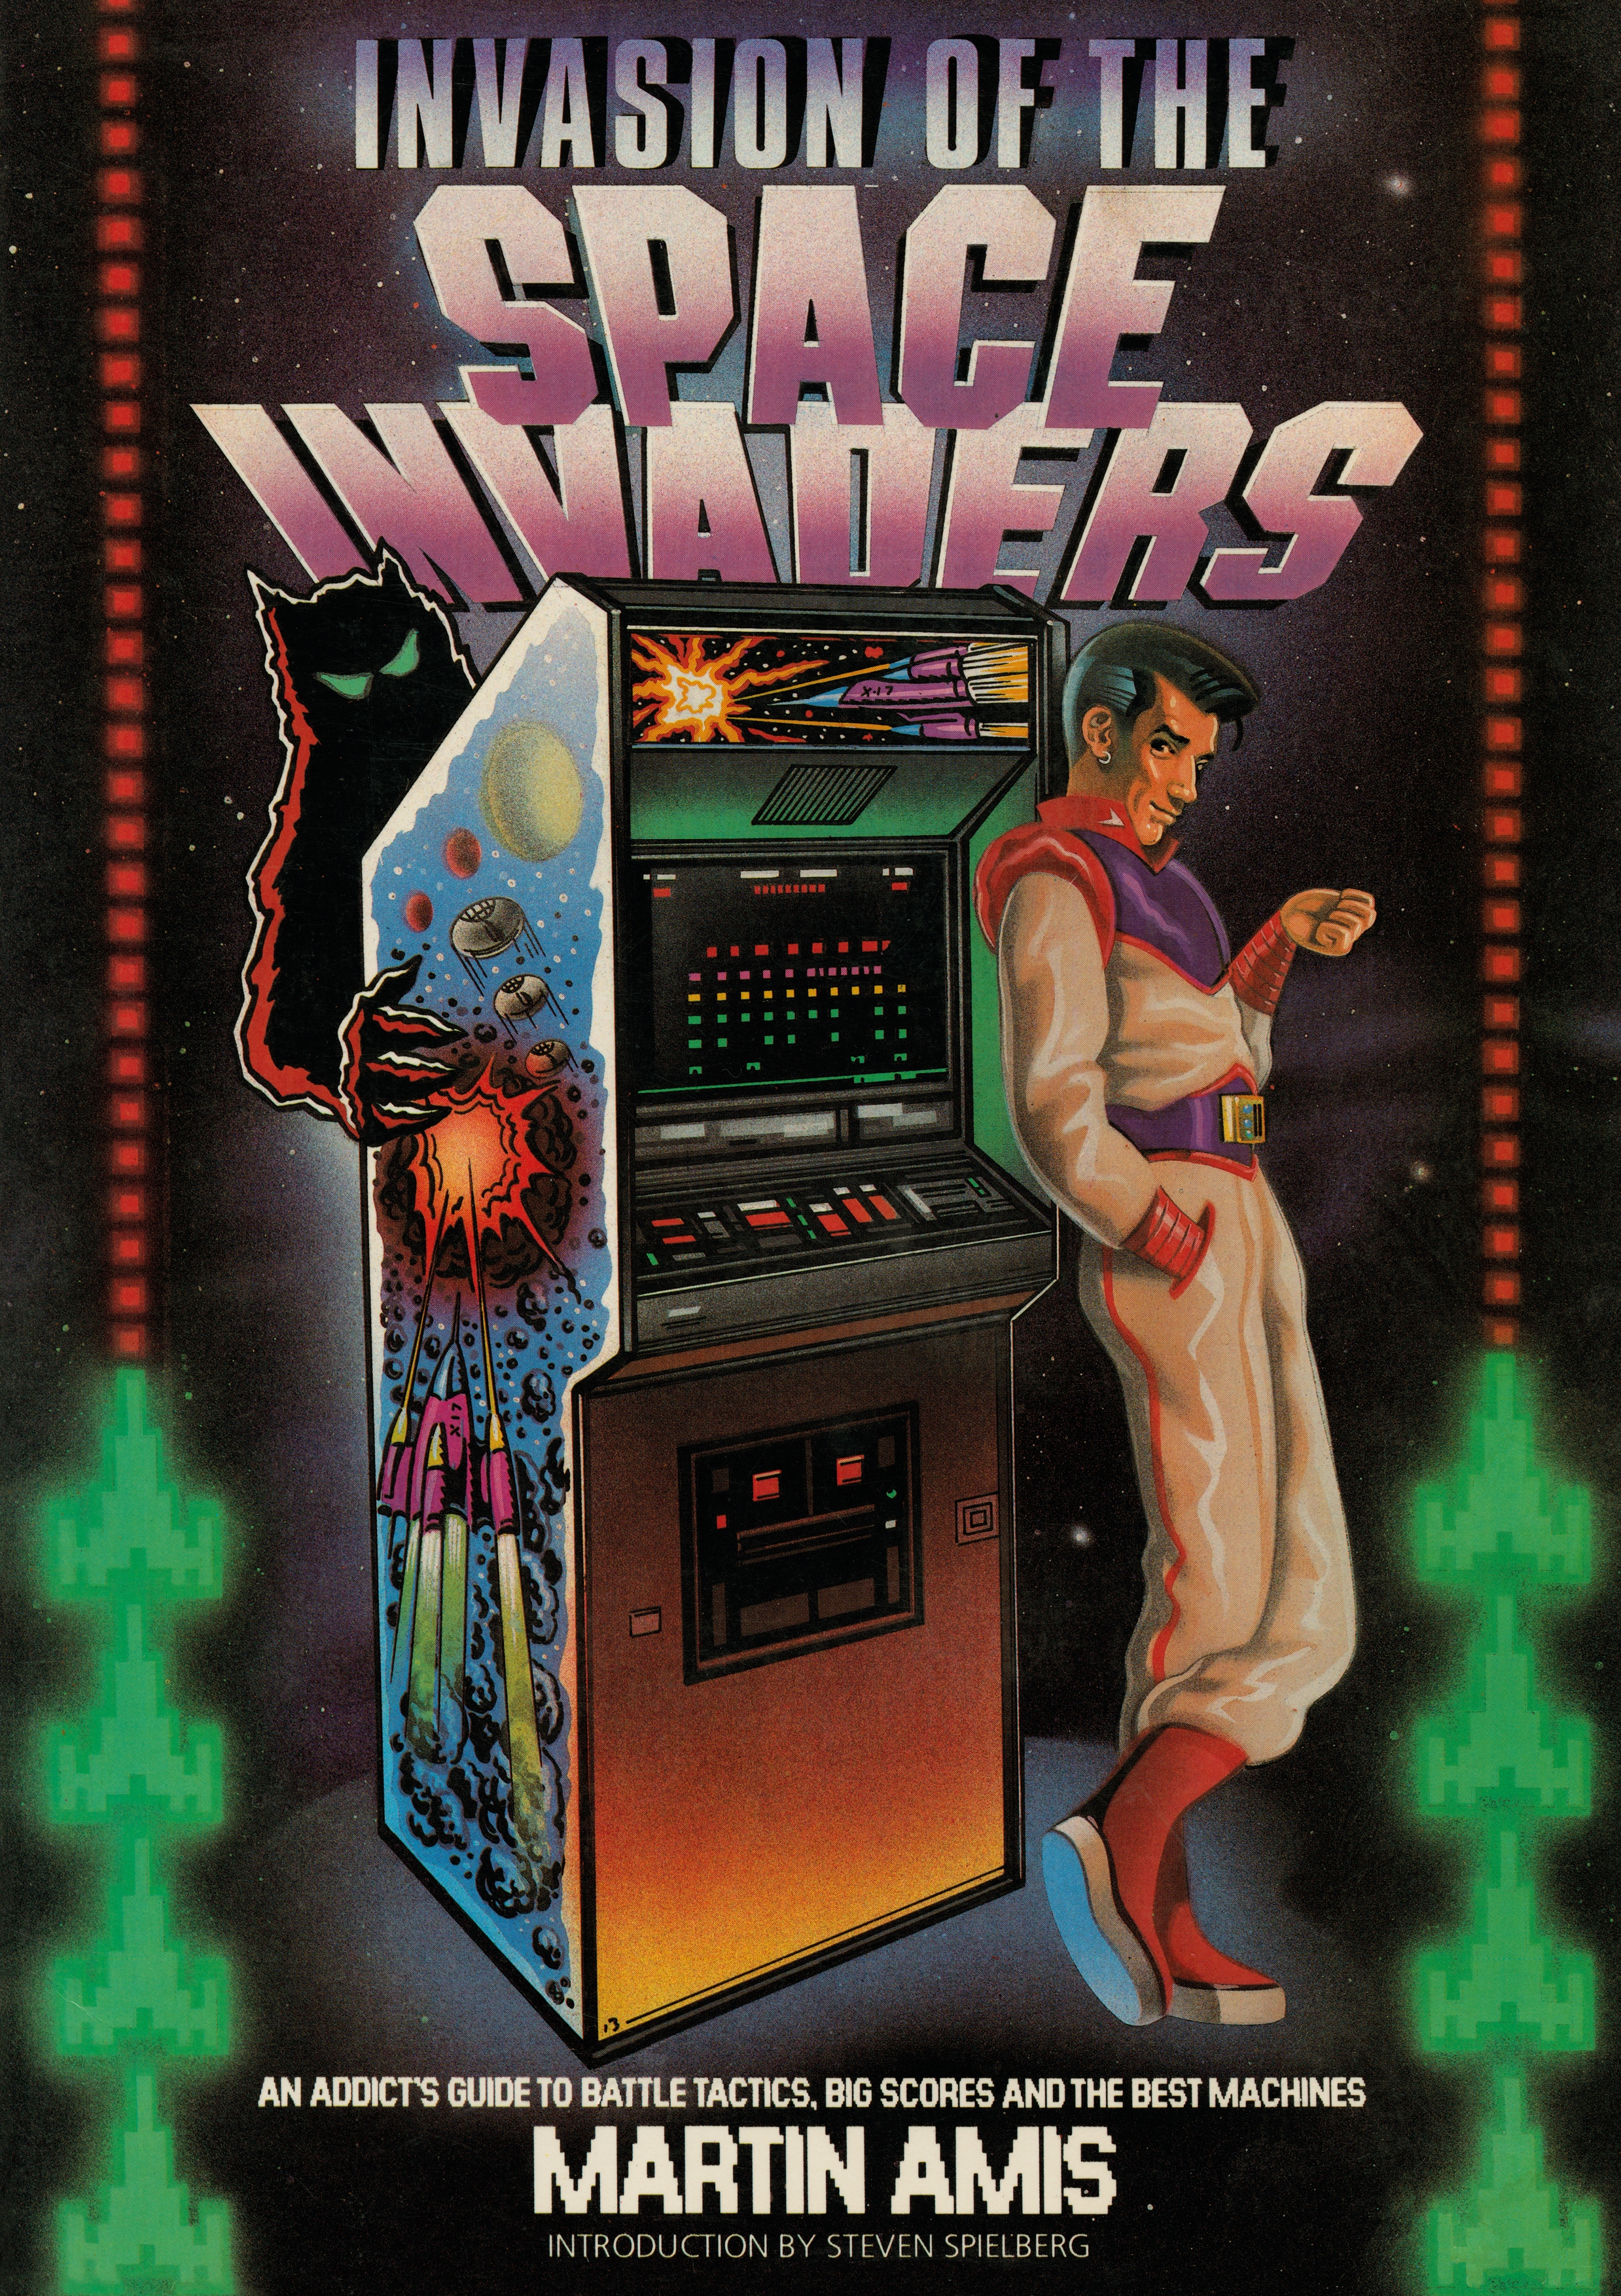 Invasion of the Space Invaders: An Addict's Guide to Battle Tactics, Big Scores and the Best Machines by Martin Amis, ISBN: 9781787331198